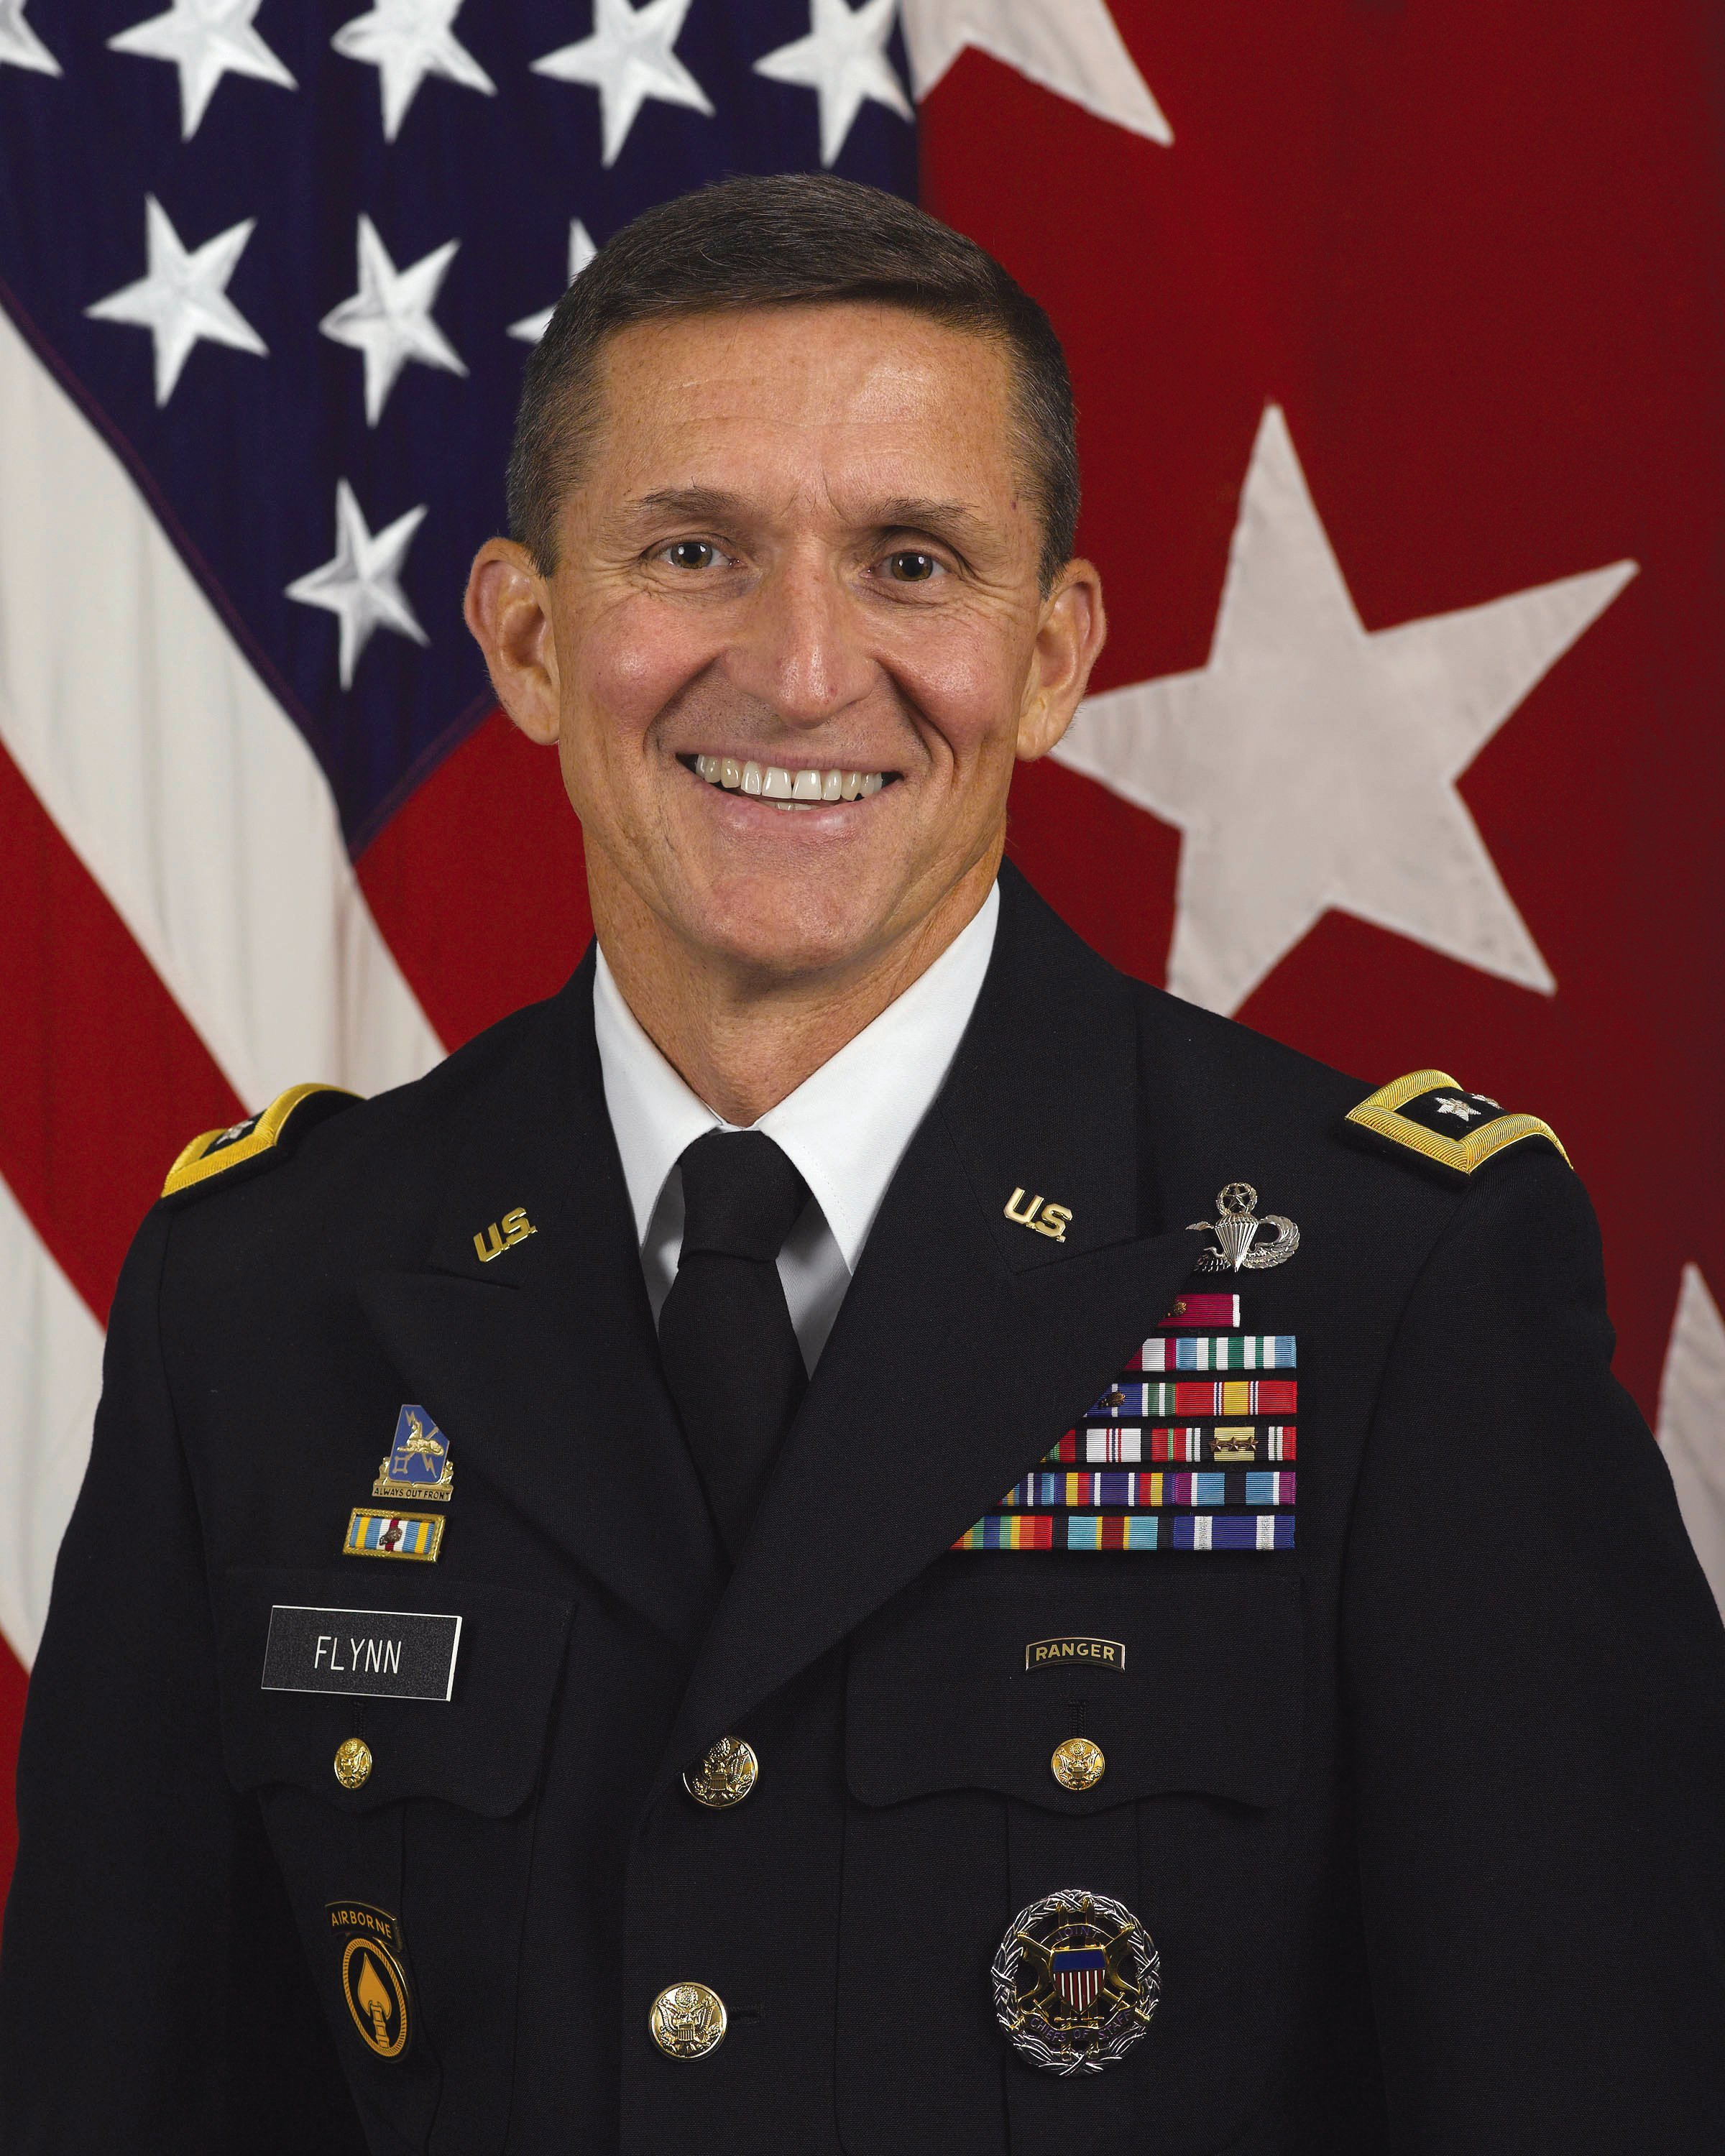 Flynn: Critic of Muslim militancy and culture